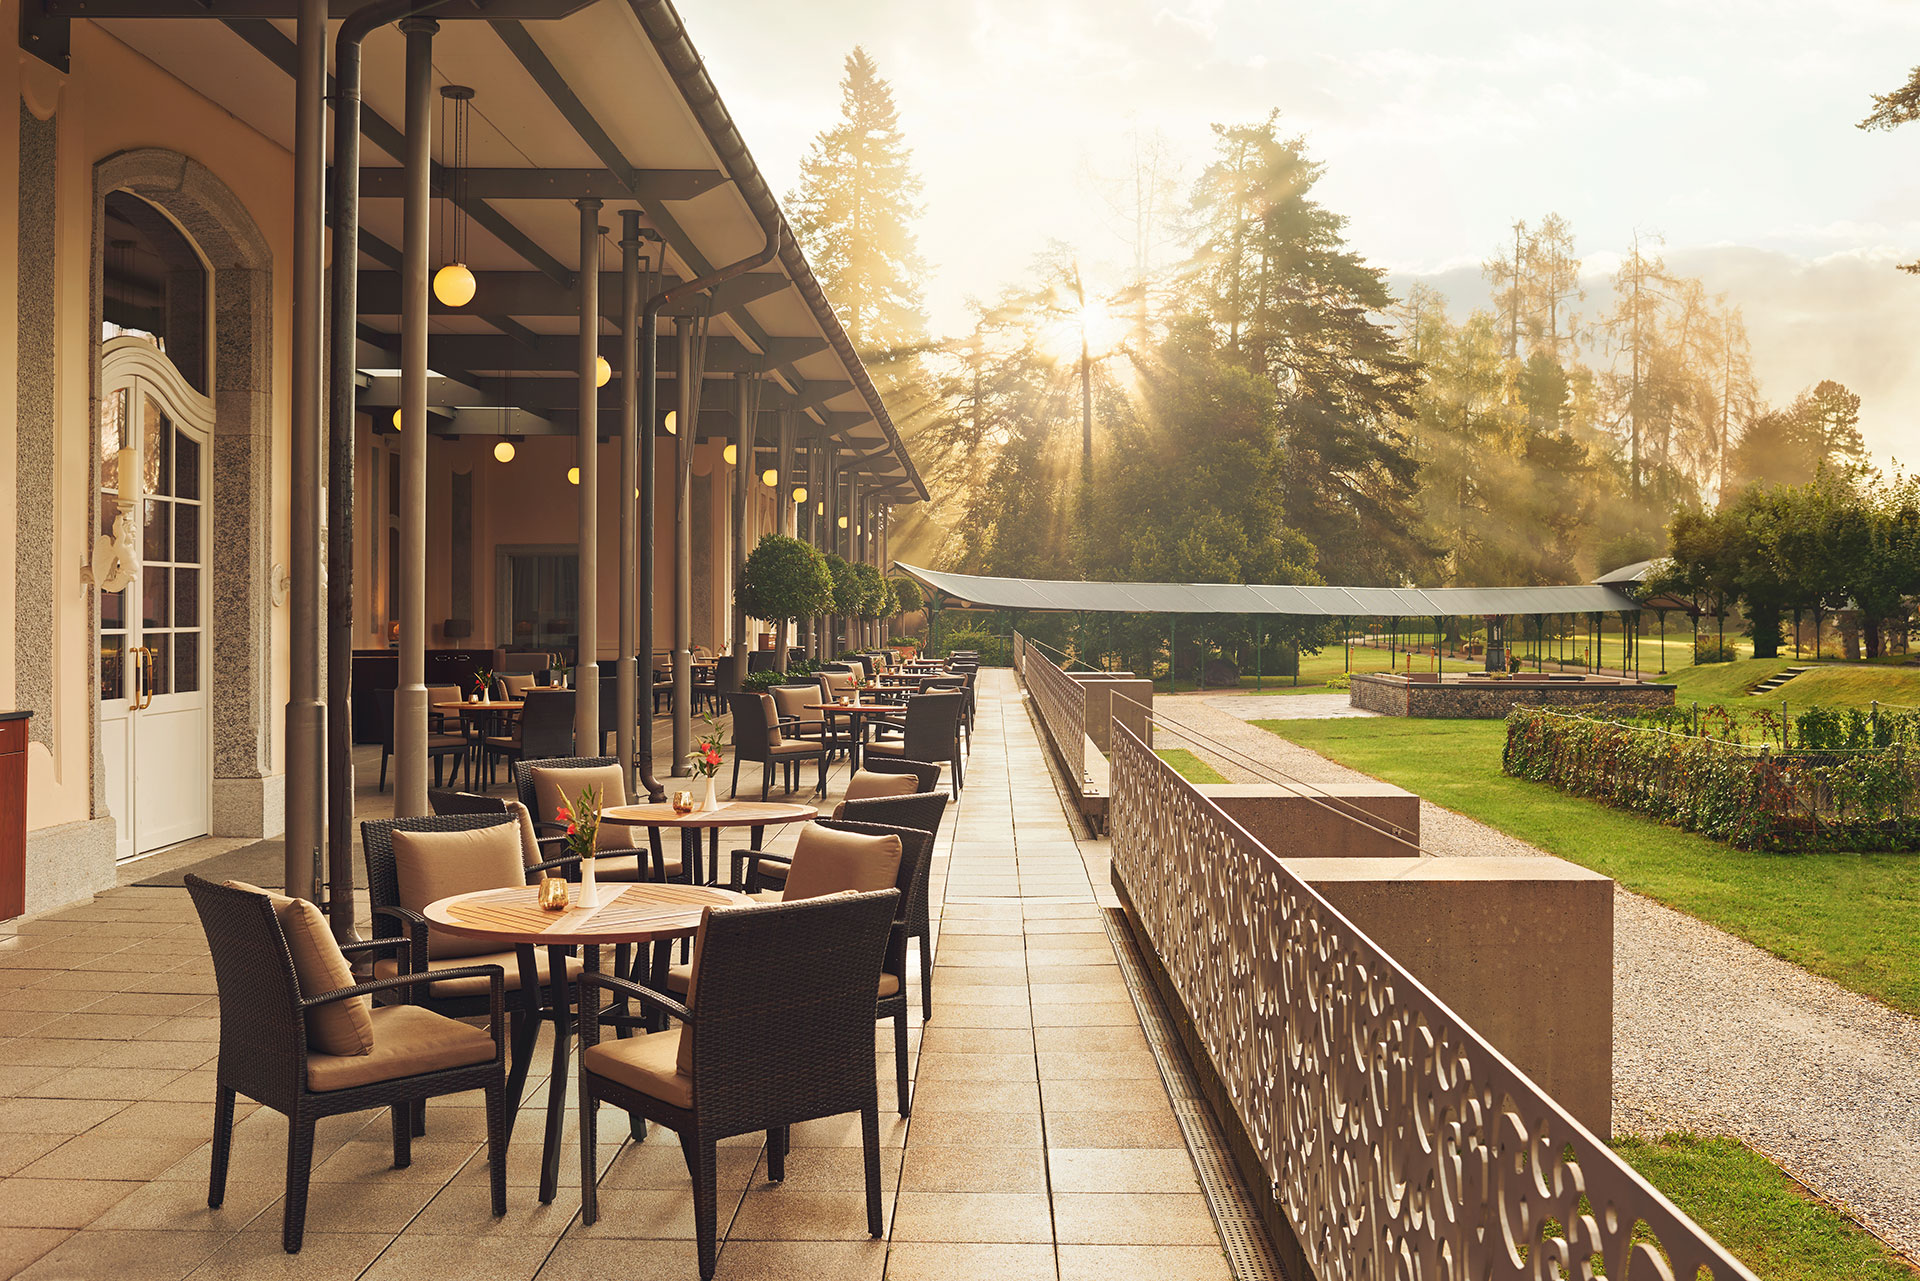 exterior shot of an outdoor dining patio. the patio is lined with black woven chairs with tan cushions surrounding light brown round table tops. There is a candle and a floral arrangement at each table. The patio overlooks the lush green grounds. In the background there are large evergreen trees with the sun shining through.